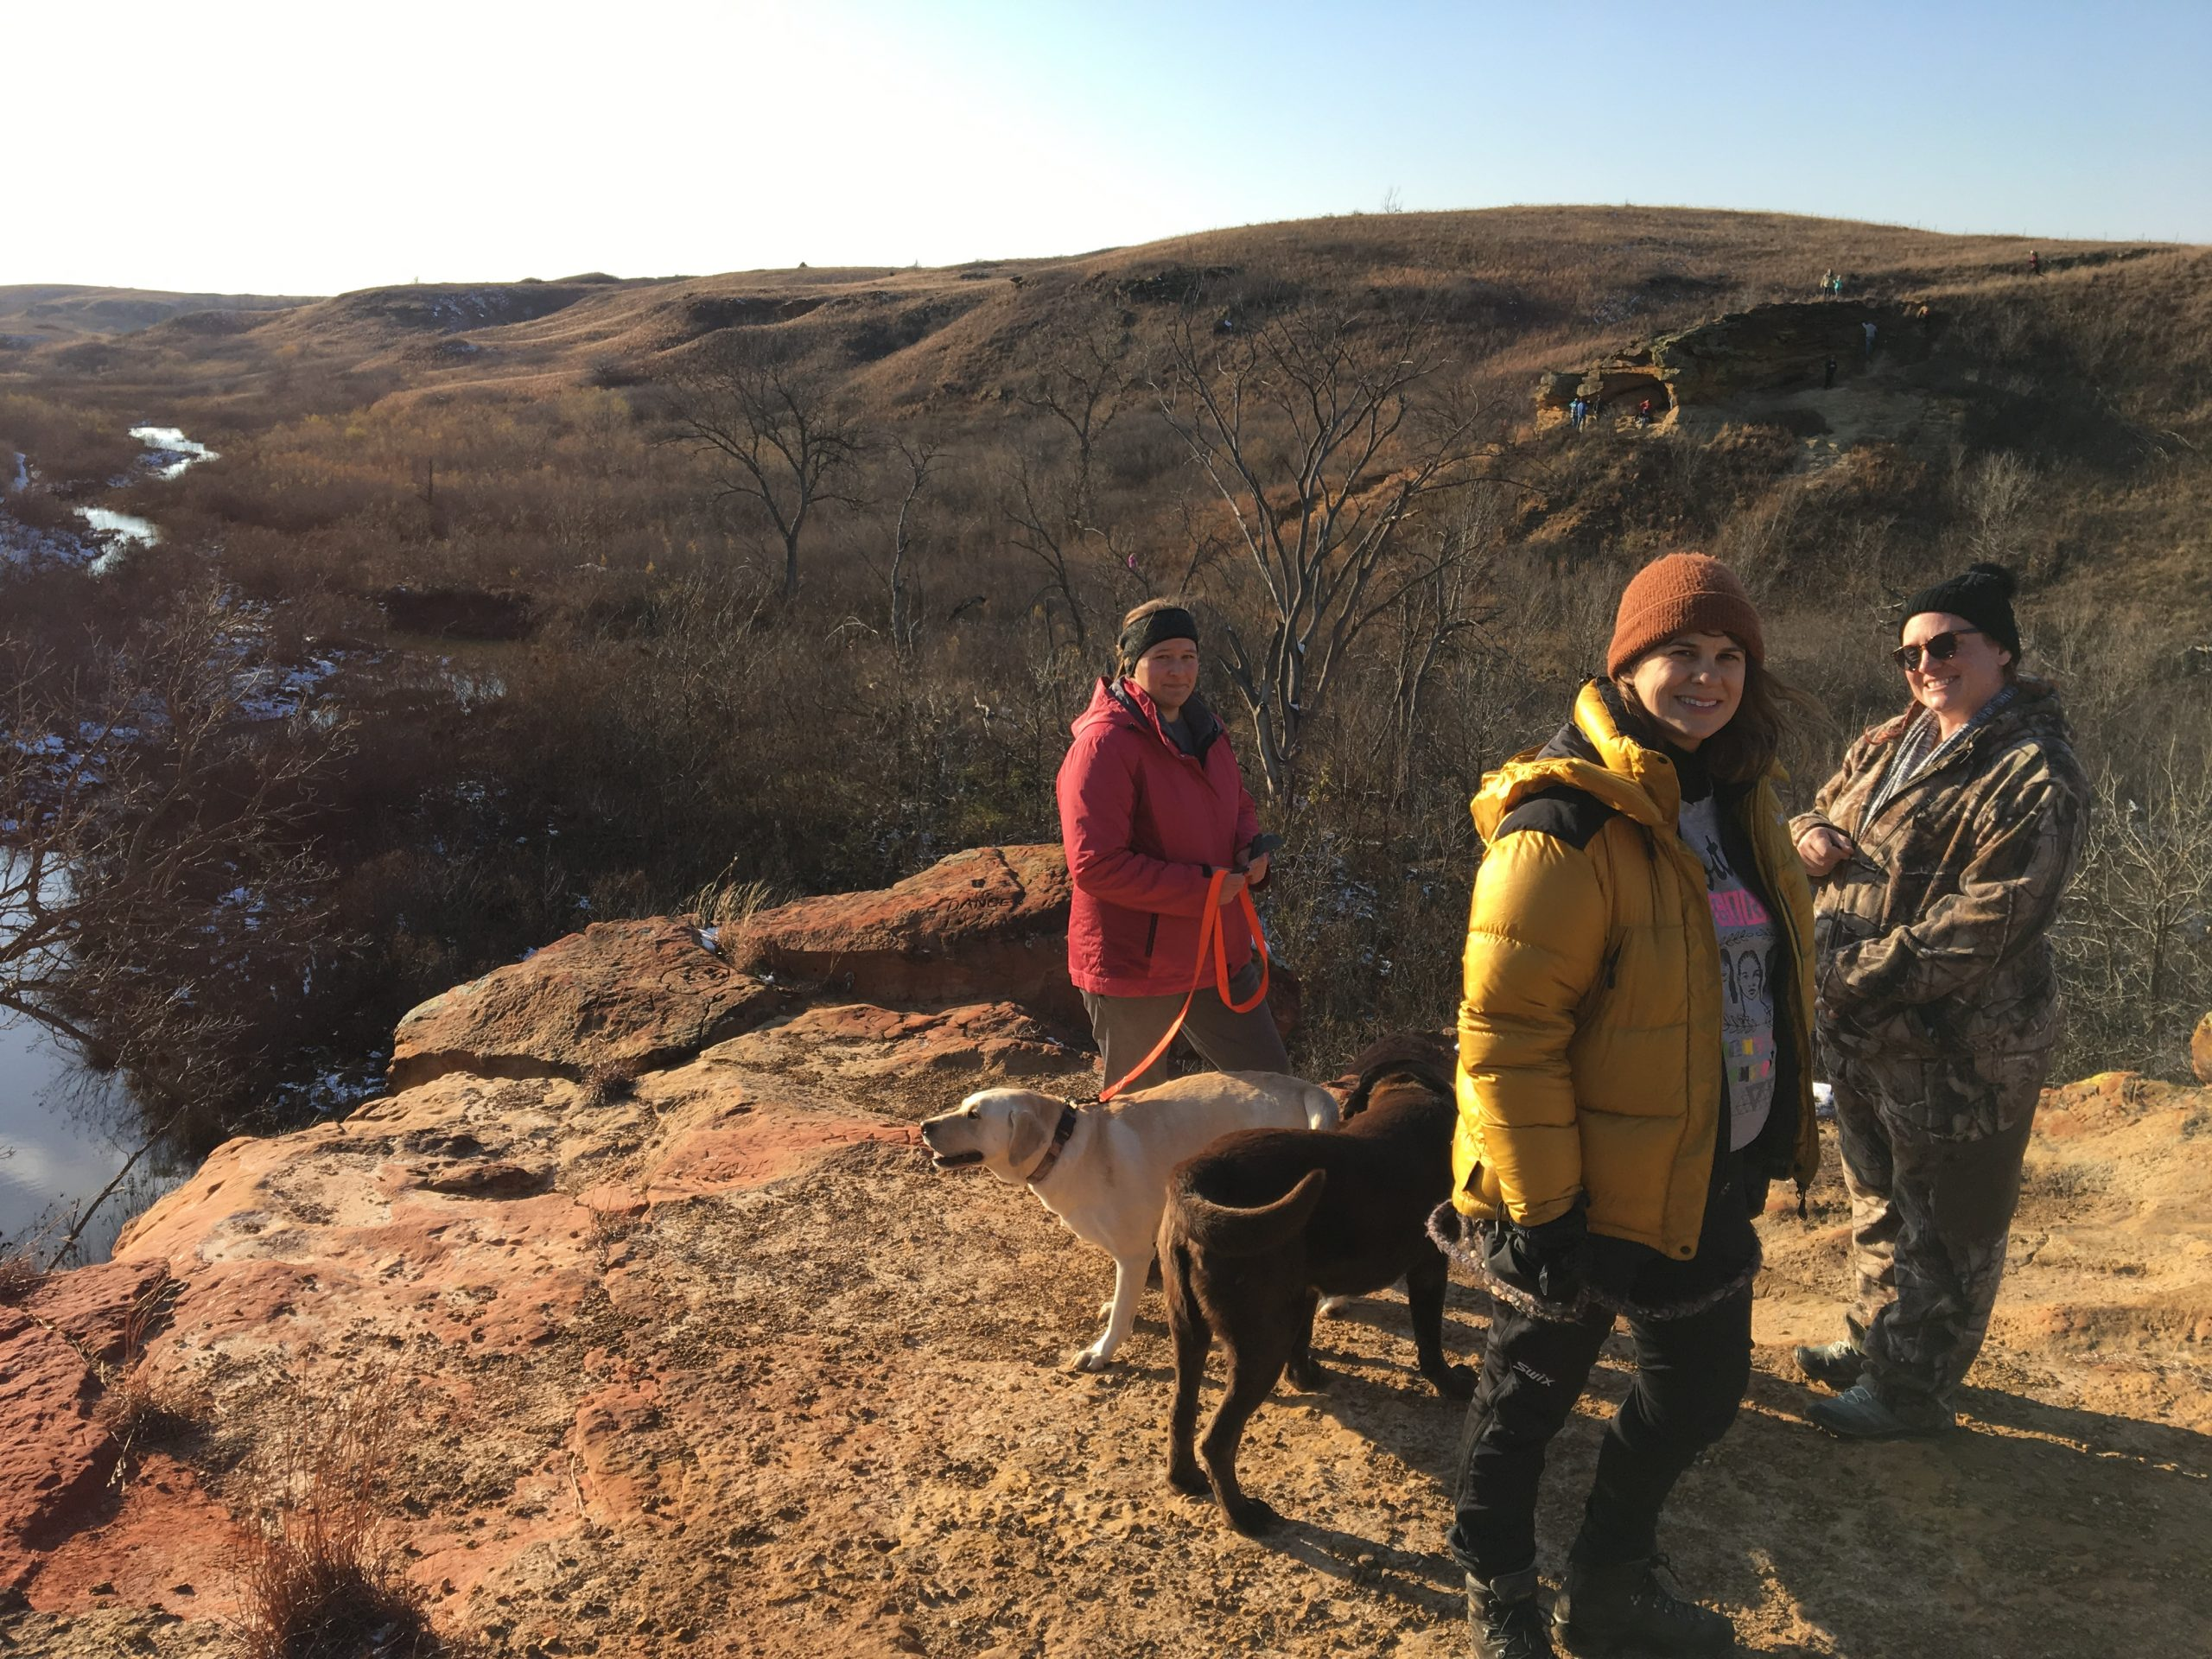 What I discovered from offseason camping on public lands in Kansas